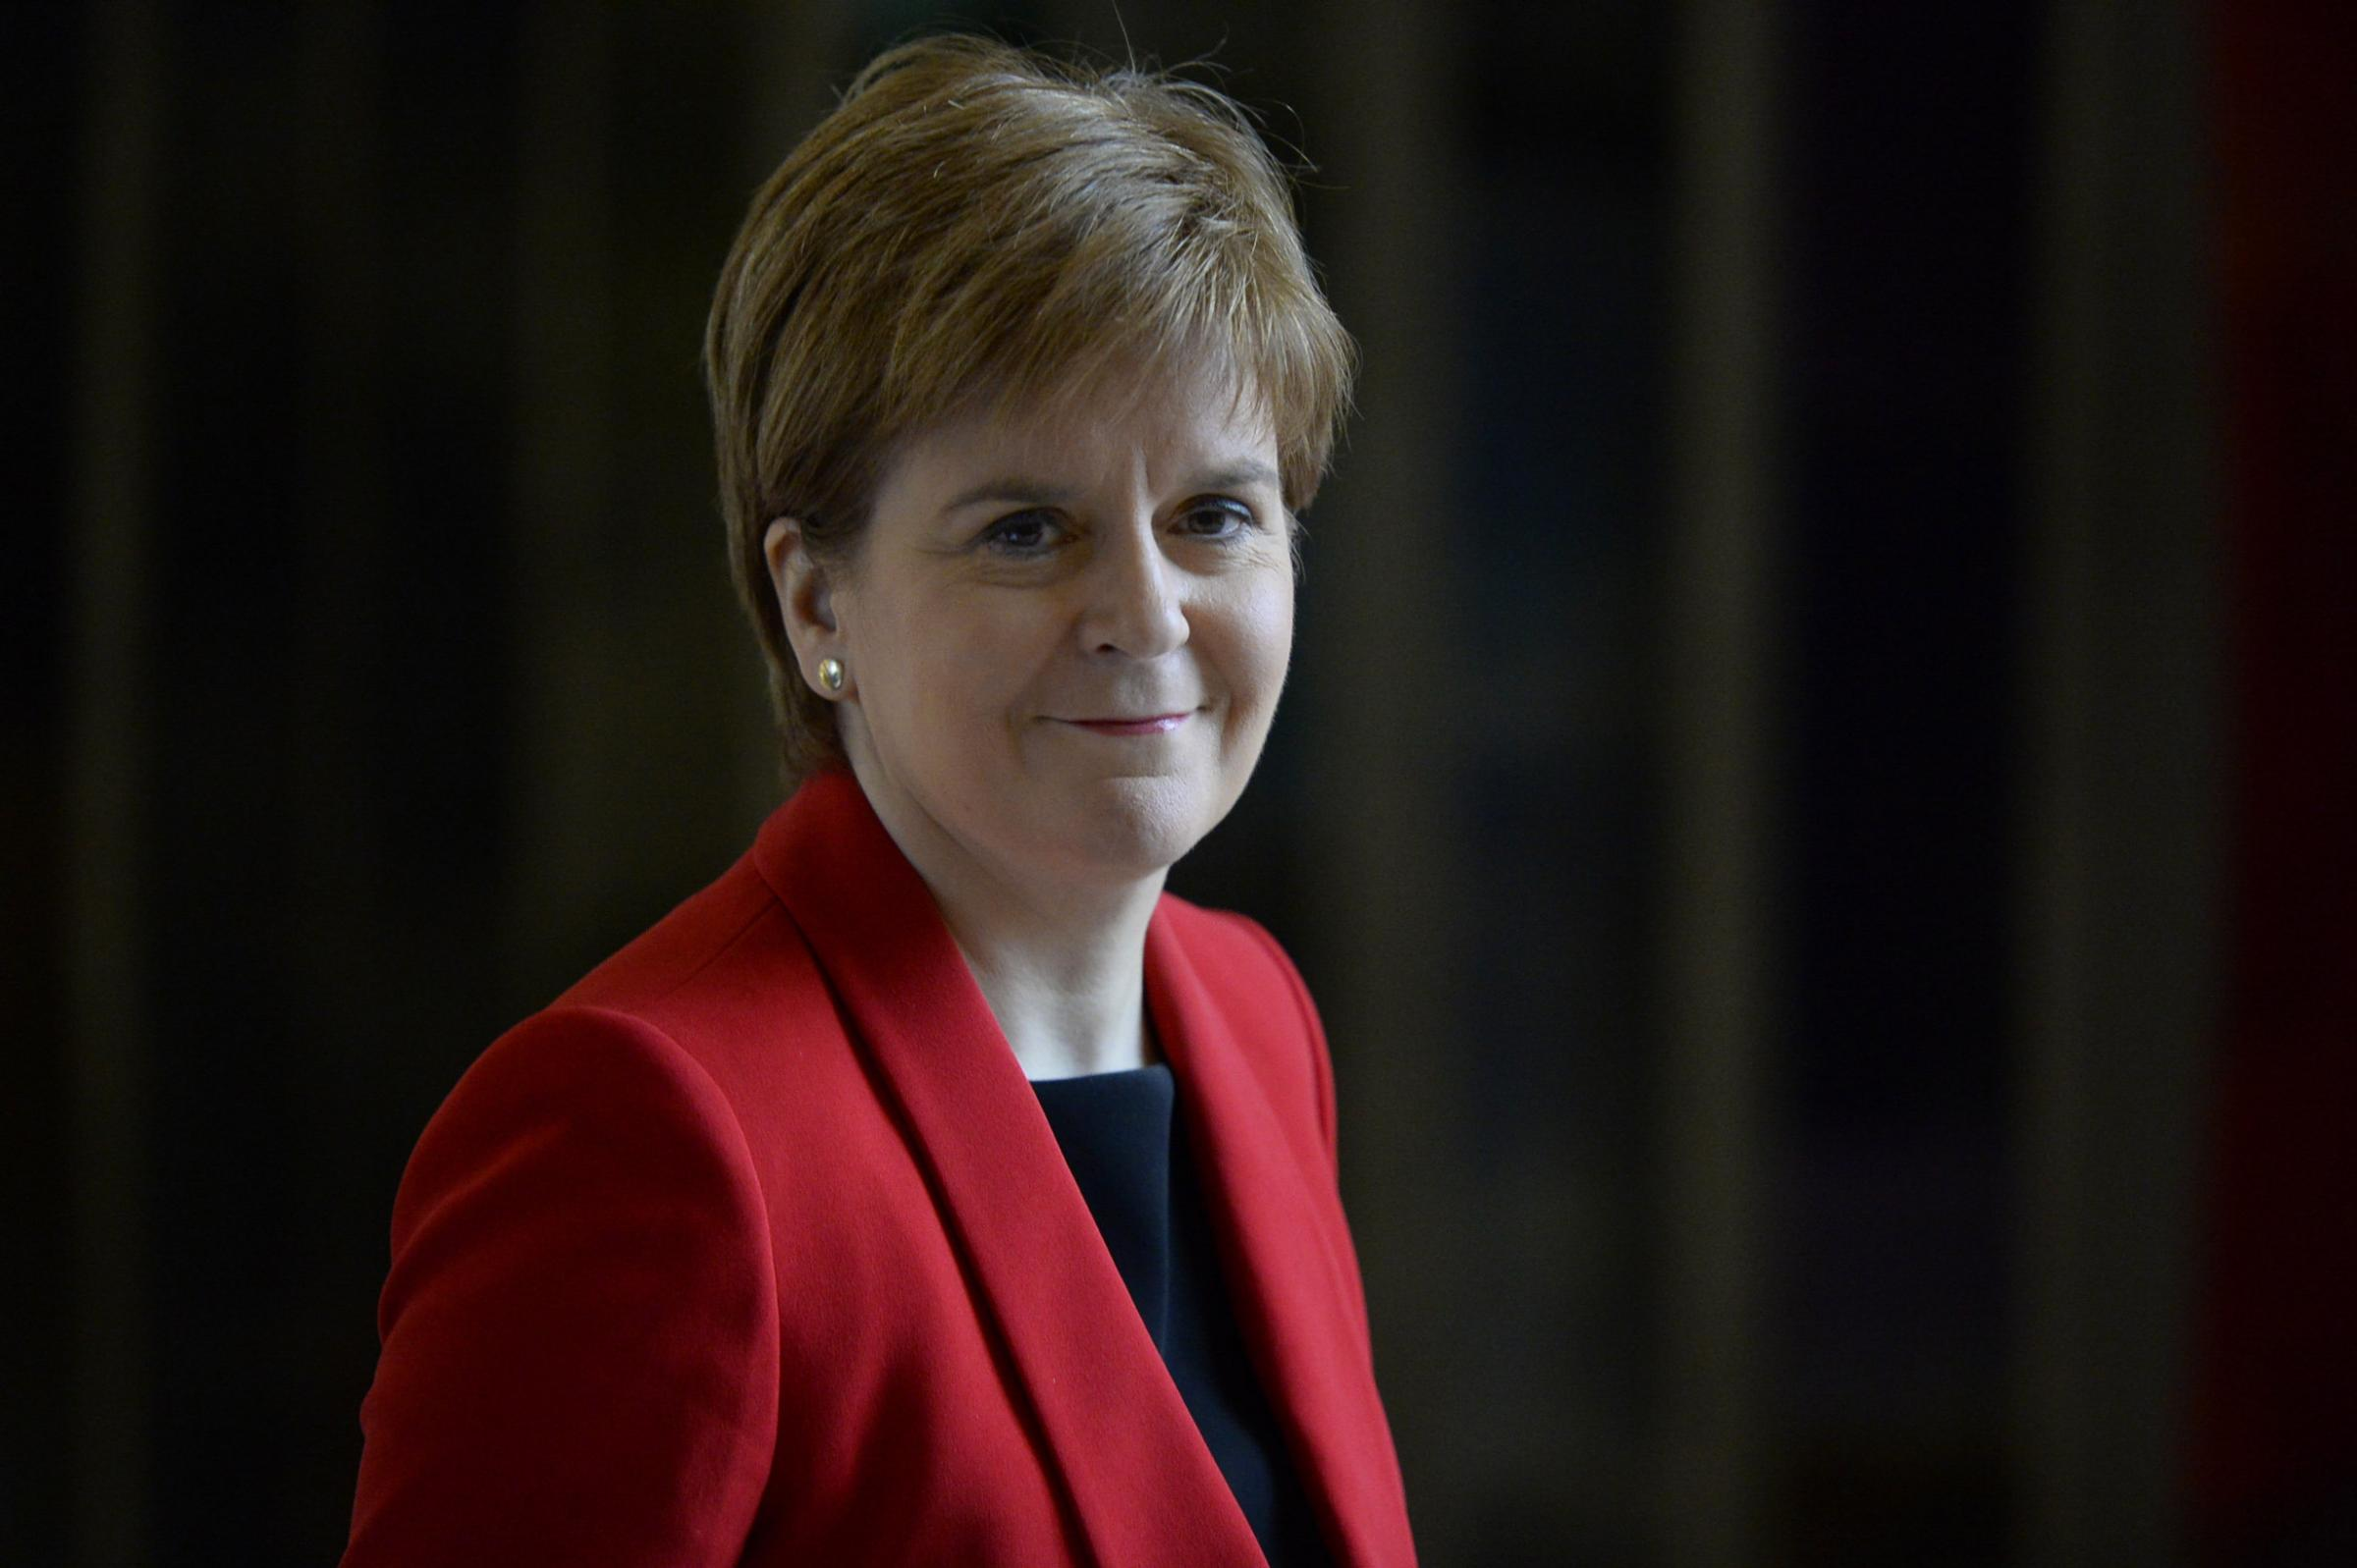 The First Minister is highlighting the plight of EU nationals who have settled in Scotland in her New Year's speech